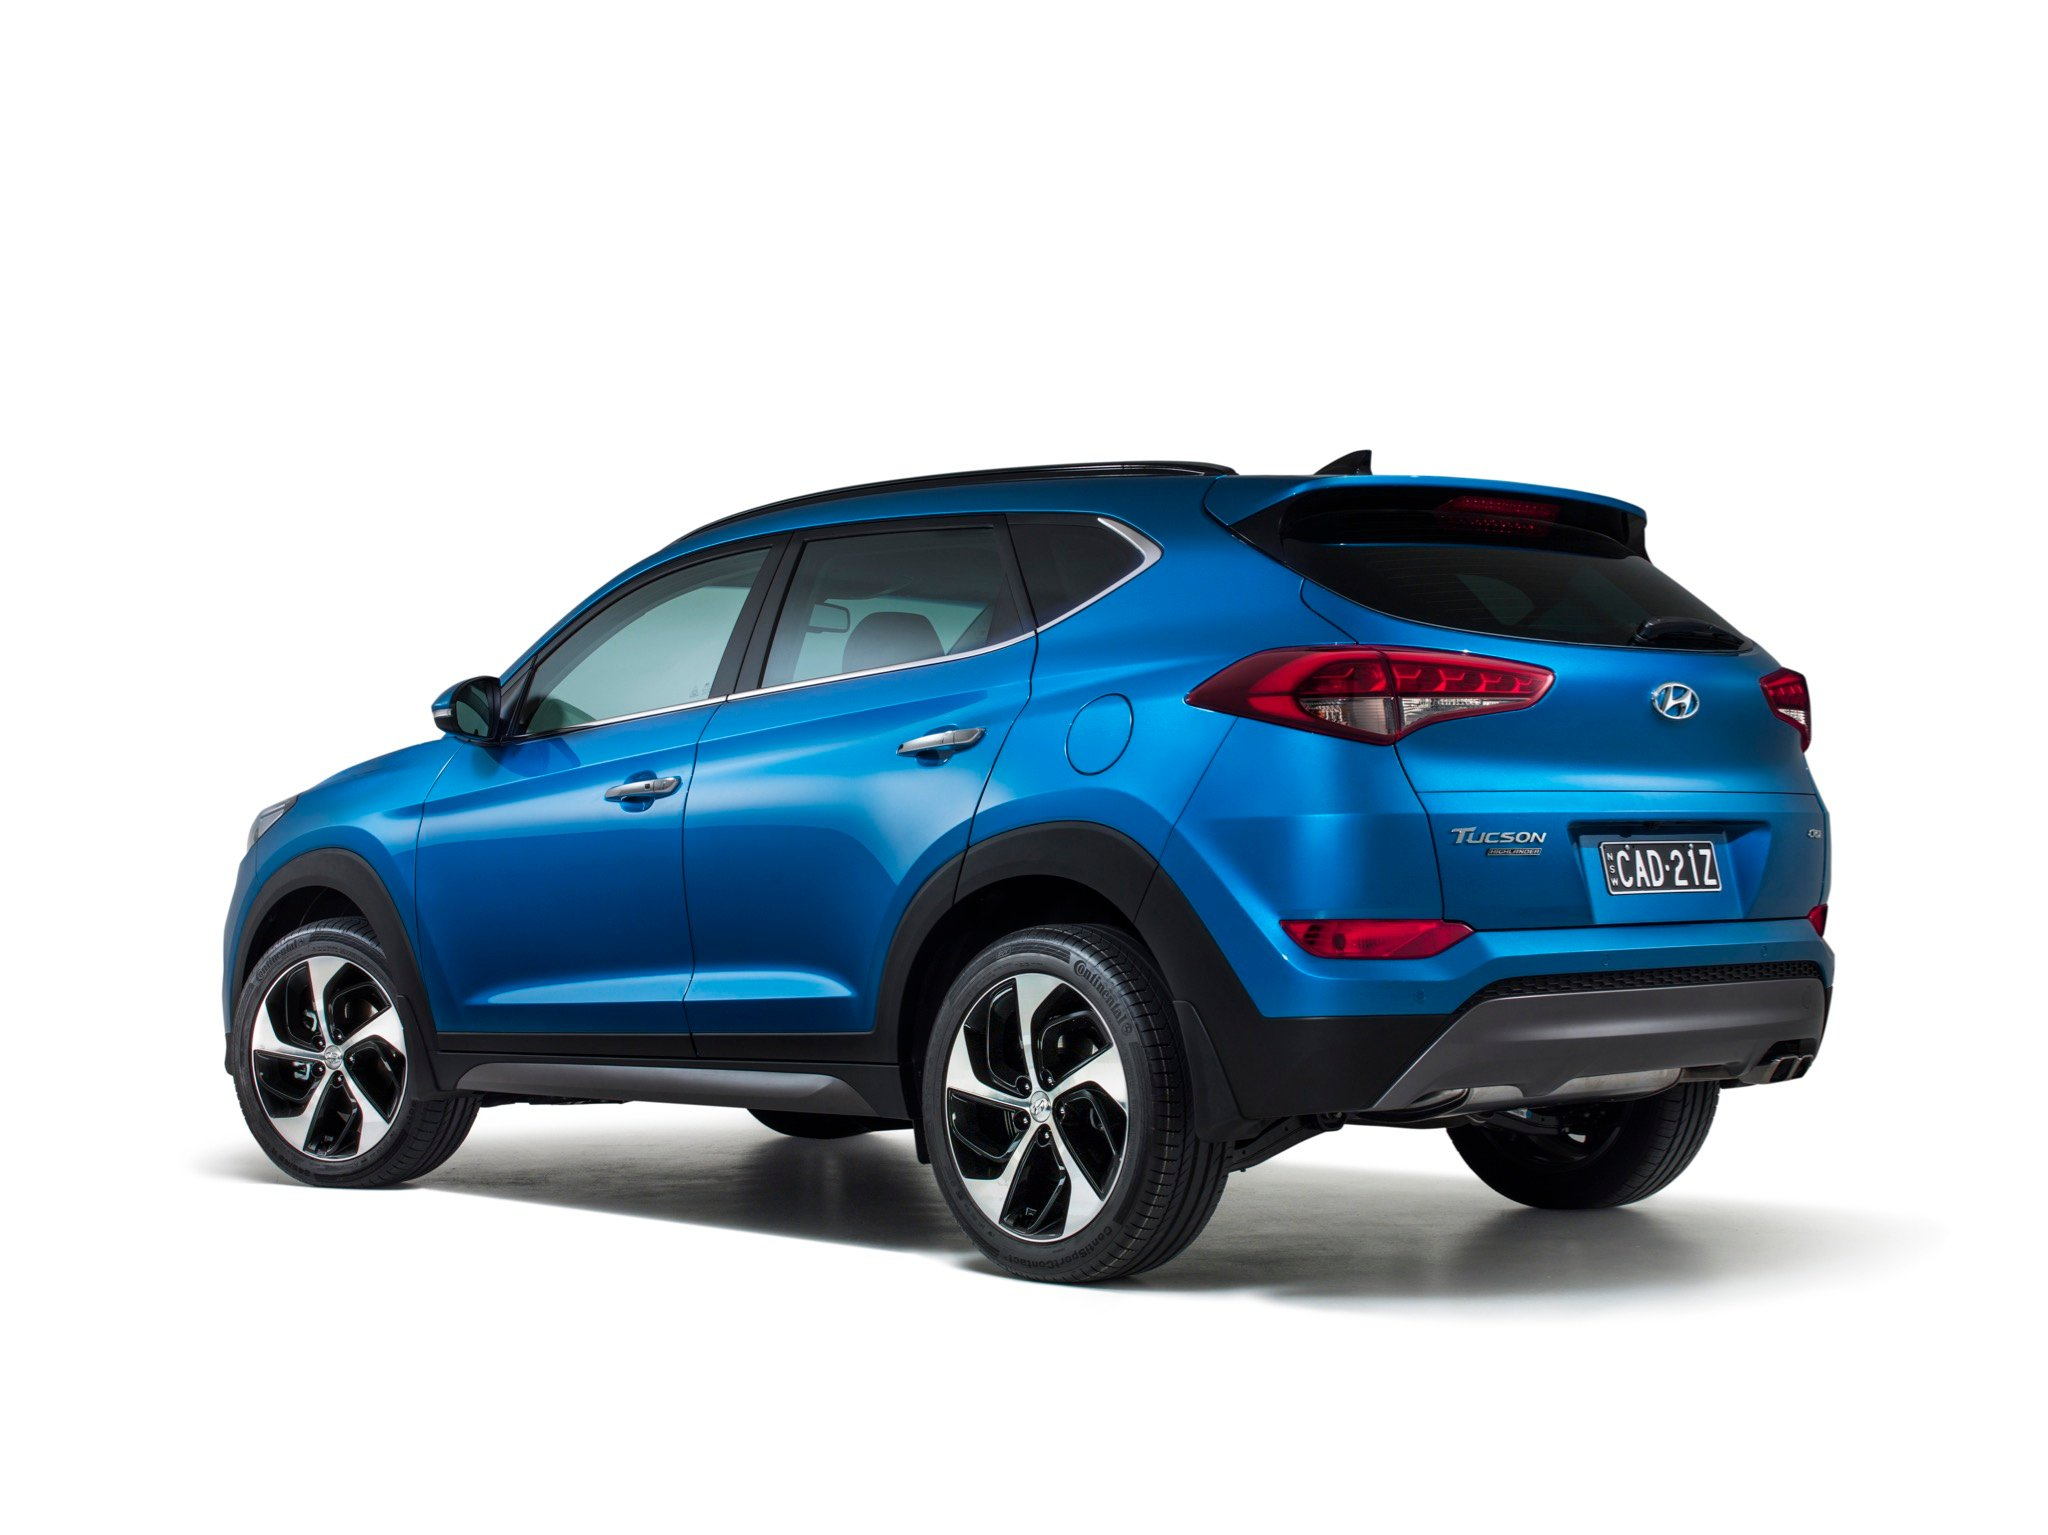 2016 hyundai tucson review photos caradvice. Black Bedroom Furniture Sets. Home Design Ideas